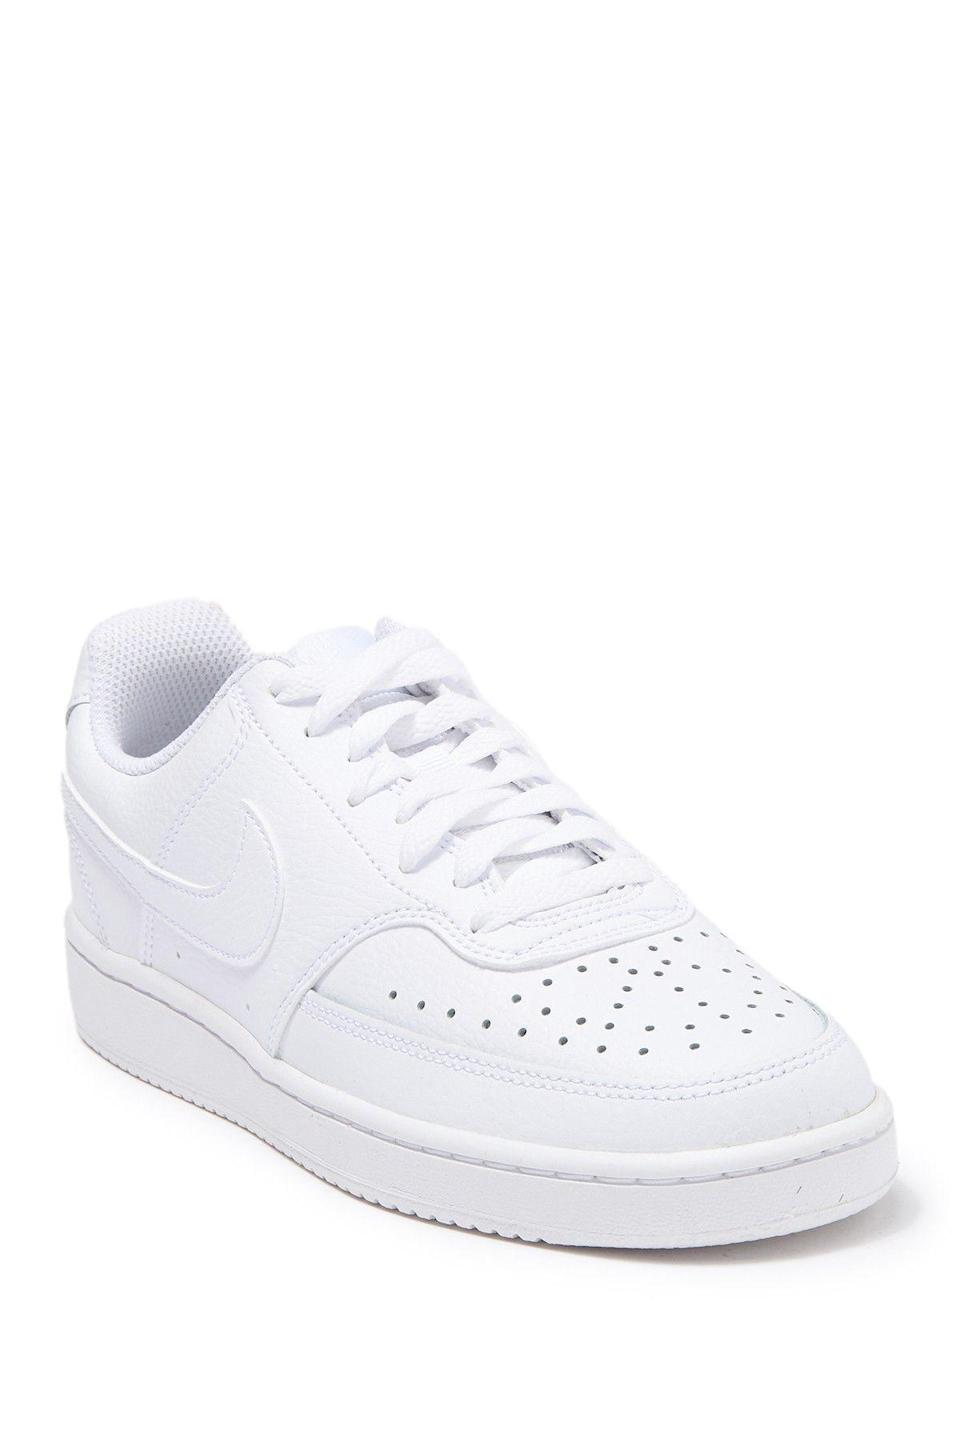 """<p><strong>Nike</strong></p><p>nordstromrack.com</p><p><a href=""""https://go.redirectingat.com?id=74968X1596630&url=https%3A%2F%2Fwww.nordstromrack.com%2Fshop%2Fproduct%2F2935982&sref=https%3A%2F%2Fwww.womenshealthmag.com%2Fstyle%2Fg33534500%2Fnordstrom-rack-nike-sale%2F"""" rel=""""nofollow noopener"""" target=""""_blank"""" data-ylk=""""slk:Shop Now"""" class=""""link rapid-noclick-resp"""">Shop Now</a></p><p><del>$65</del><strong><br>$49.97</strong></p><p>If you want to take your love of Nike outside of the gym (or, okay, your virtual workout), check out this sleek style. This pair will give your next socially distanced walk some curb appeal.</p>"""